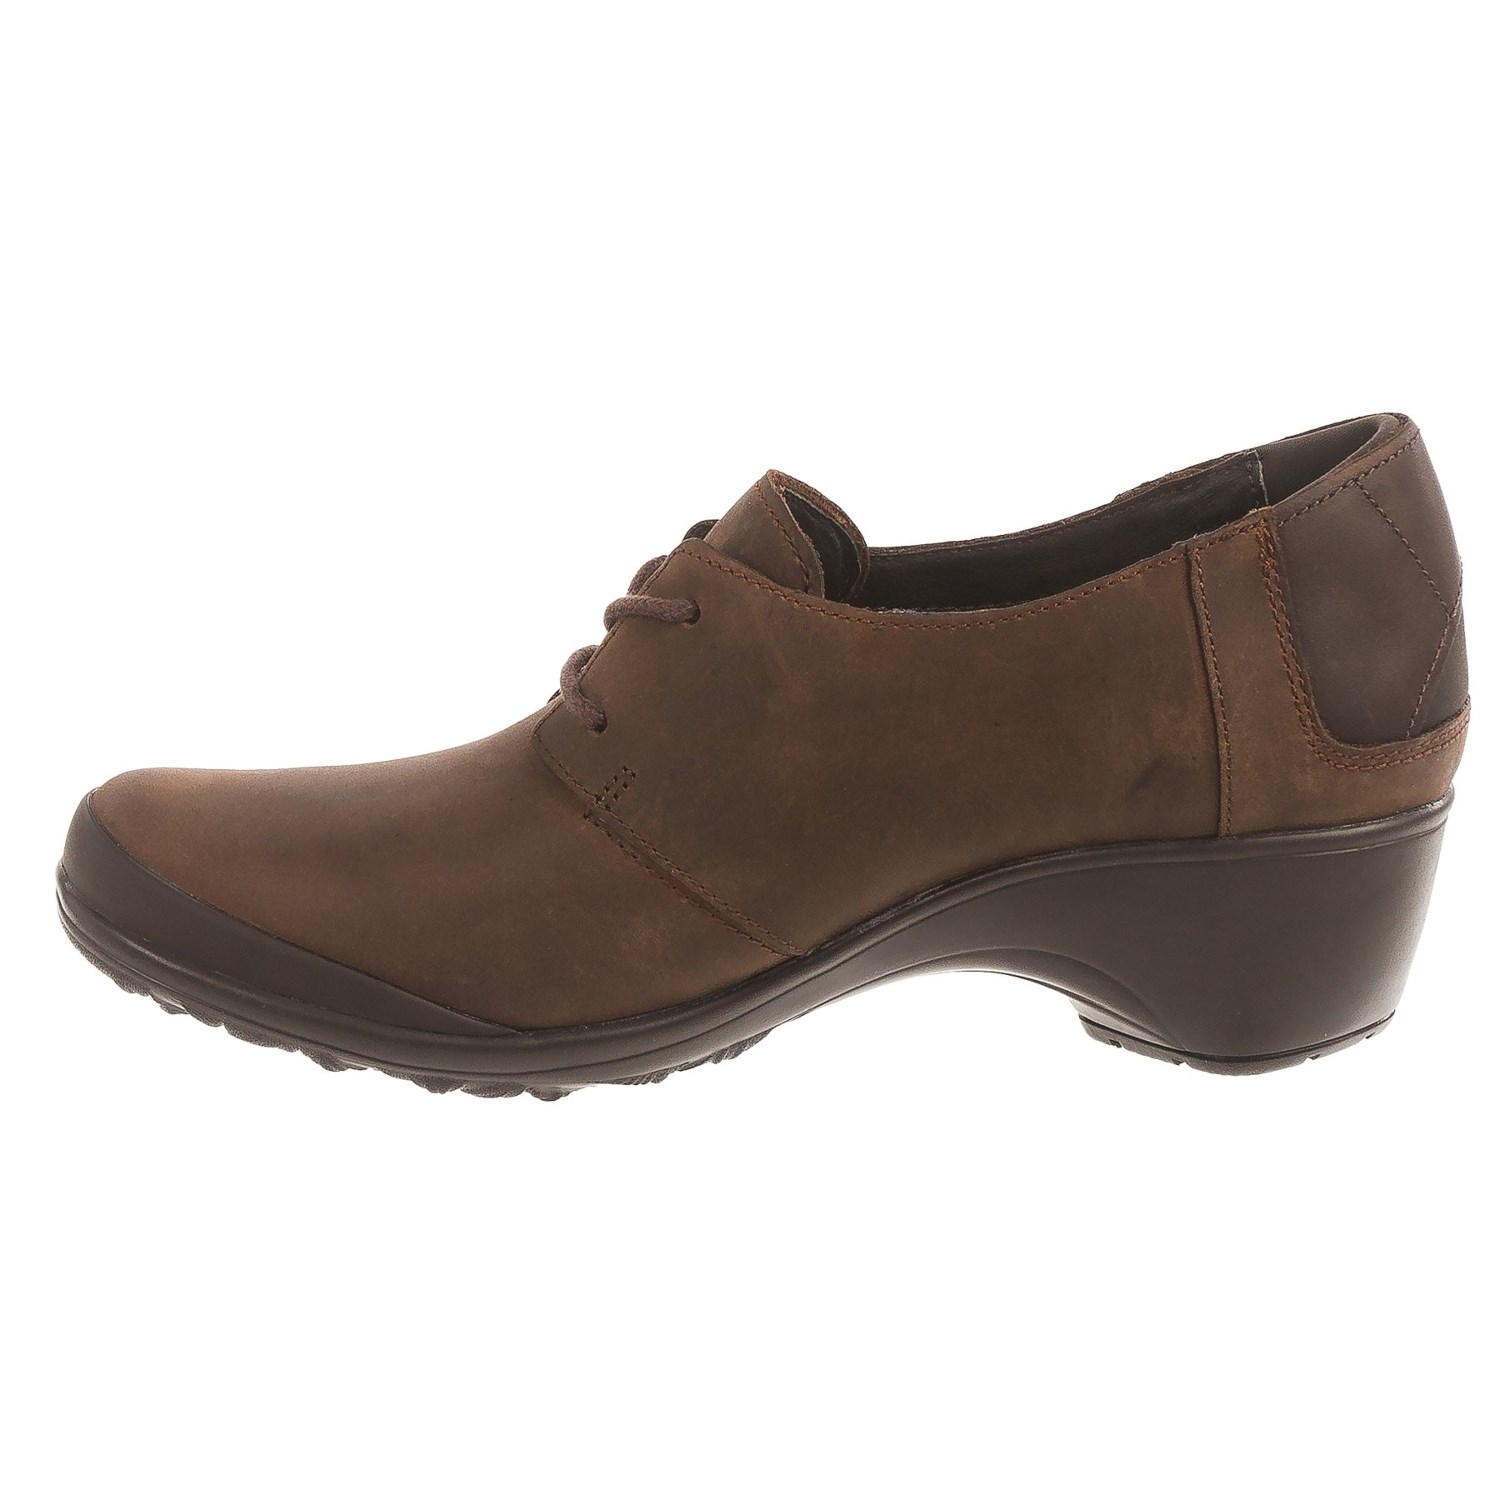 Merrell Veranda Tie Shoes For Women Save 53